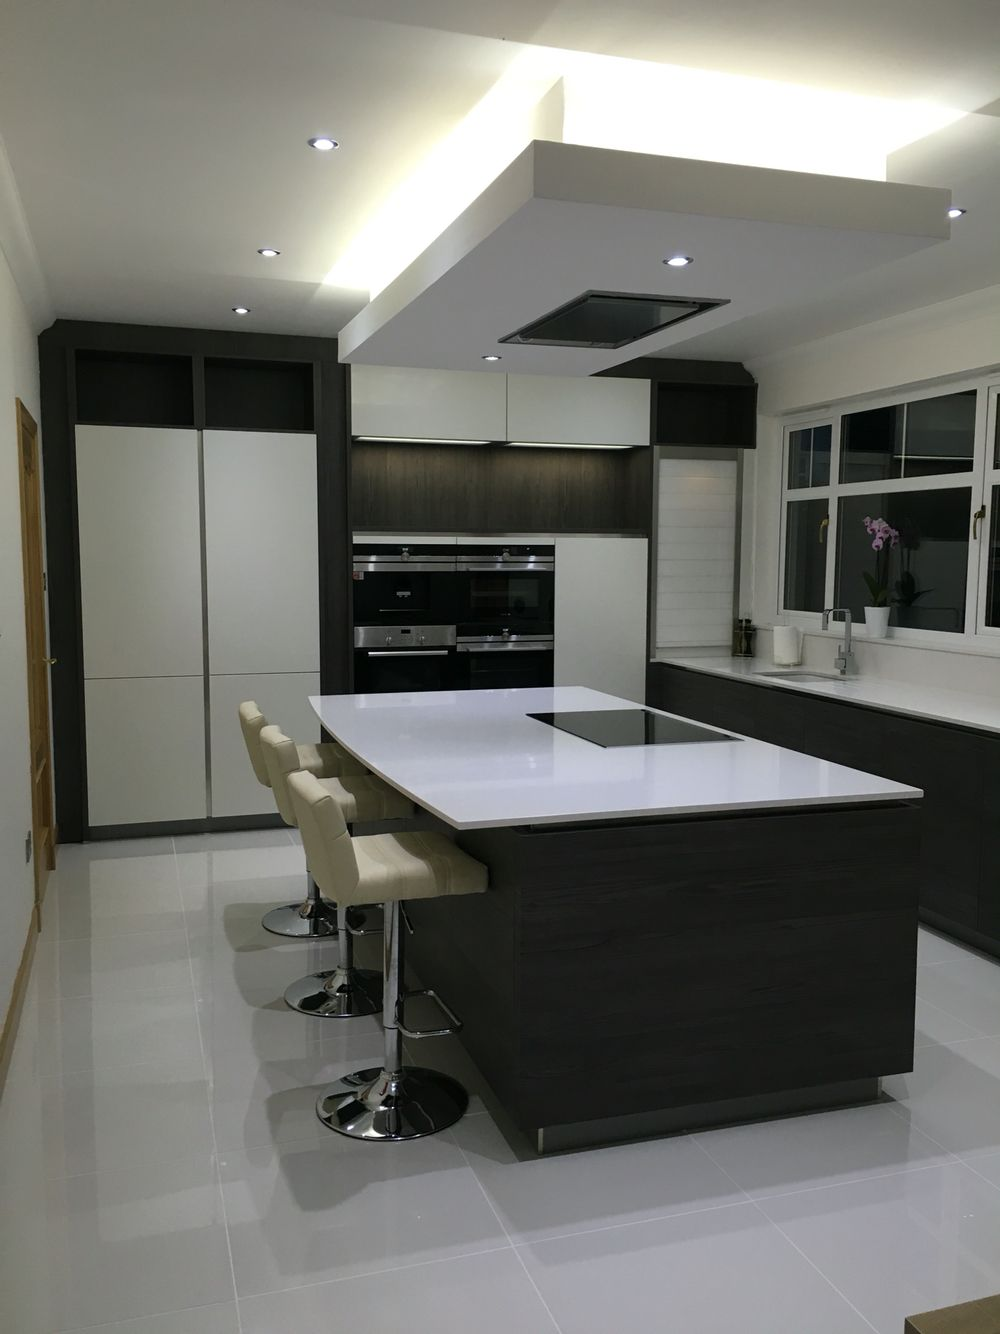 magnificient small kitchen design ideas for home yyyy decor also rh pinterest